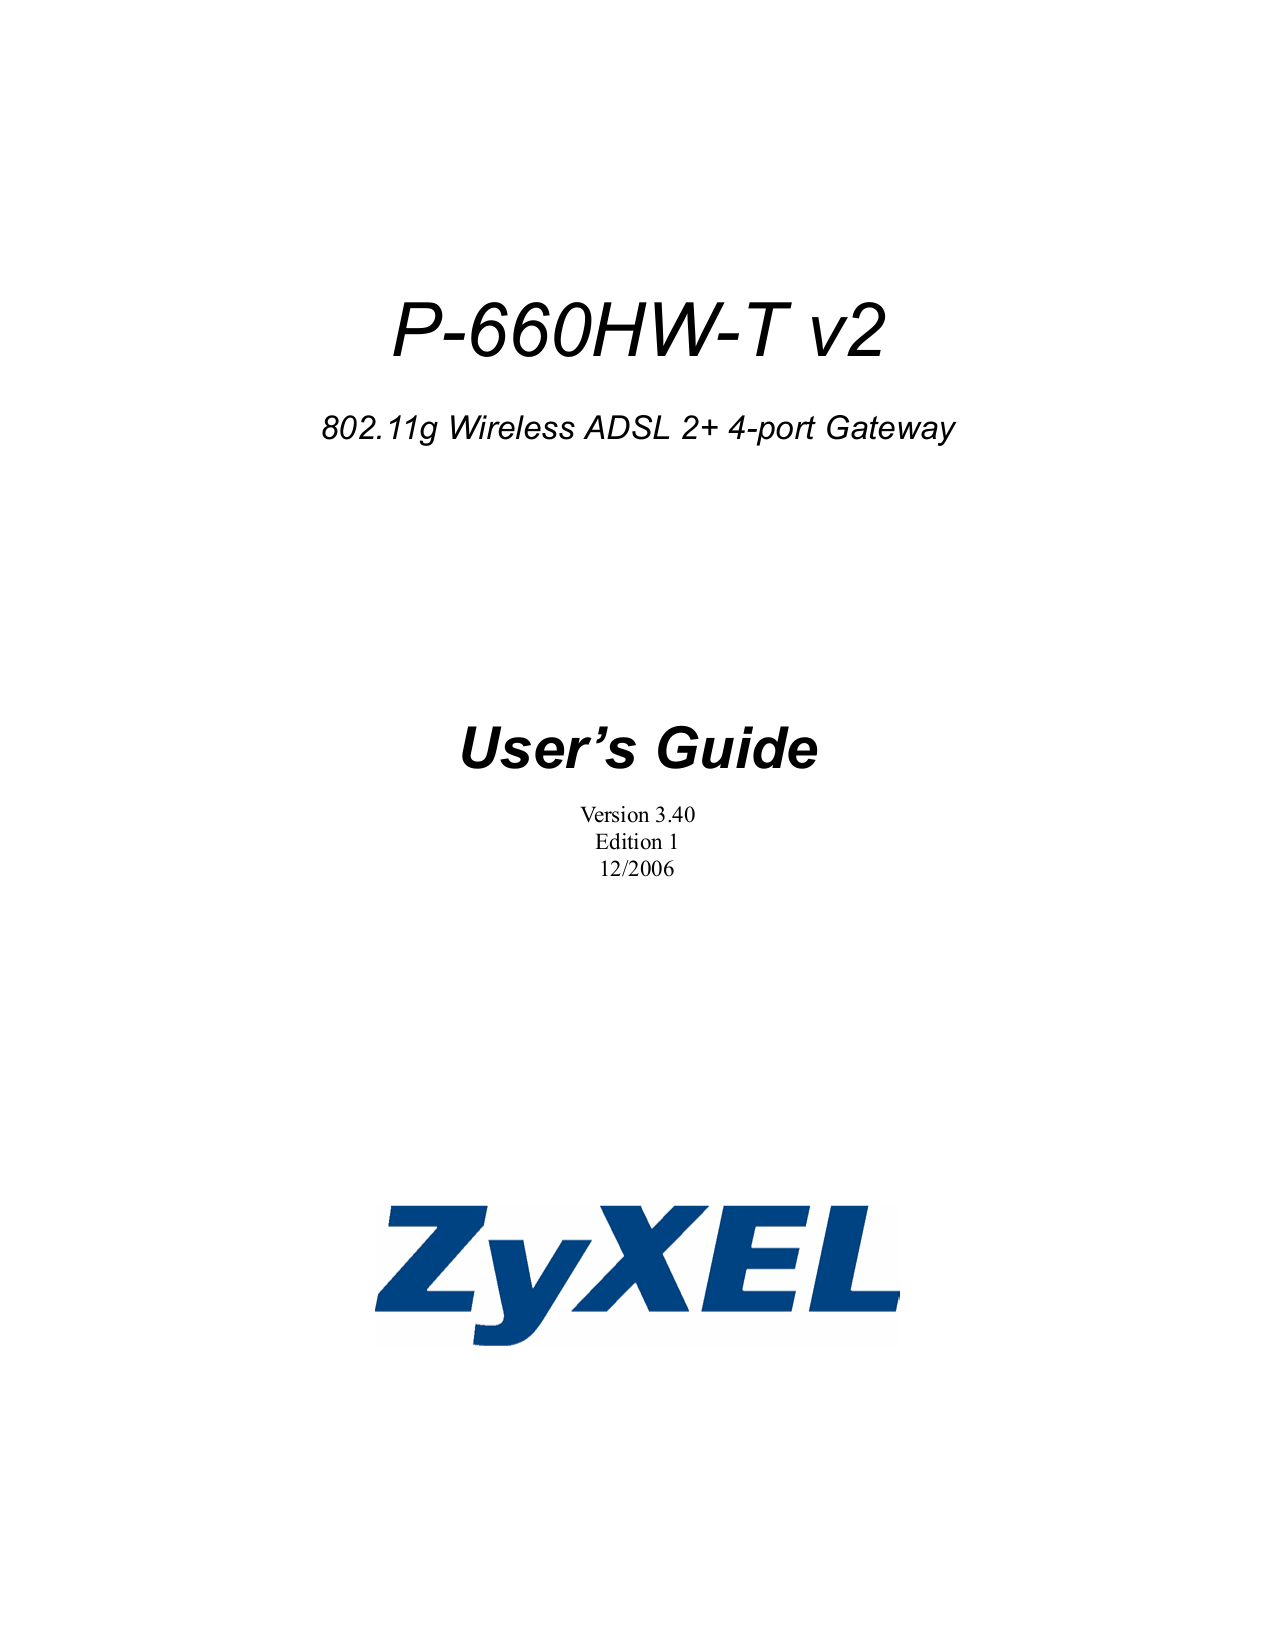 pdf for Zyxel Other P-660H-T3 Gateways manual